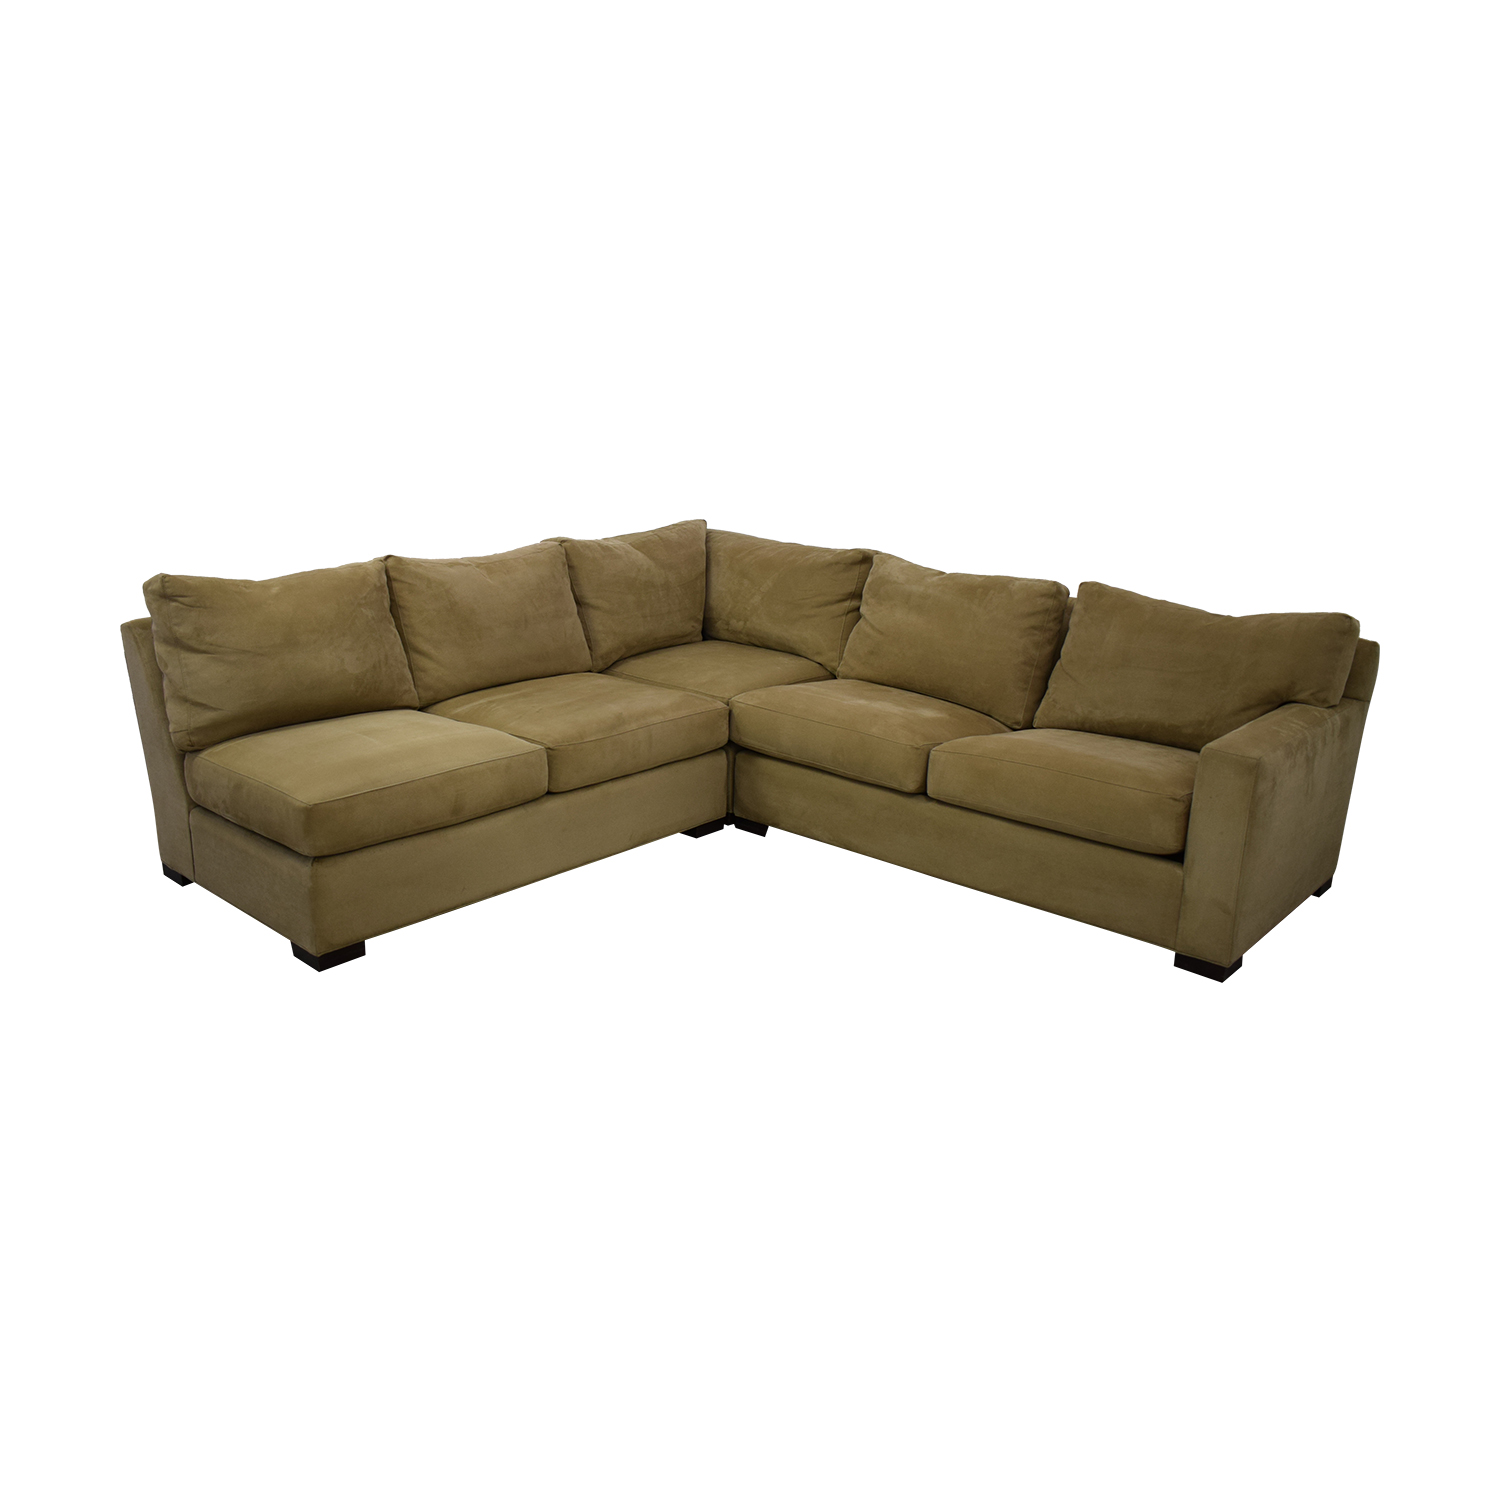 buy Crate & Barrel Axis Beige Three Piece Sleeper Sectional Sofa Crate & Barrel Sofas